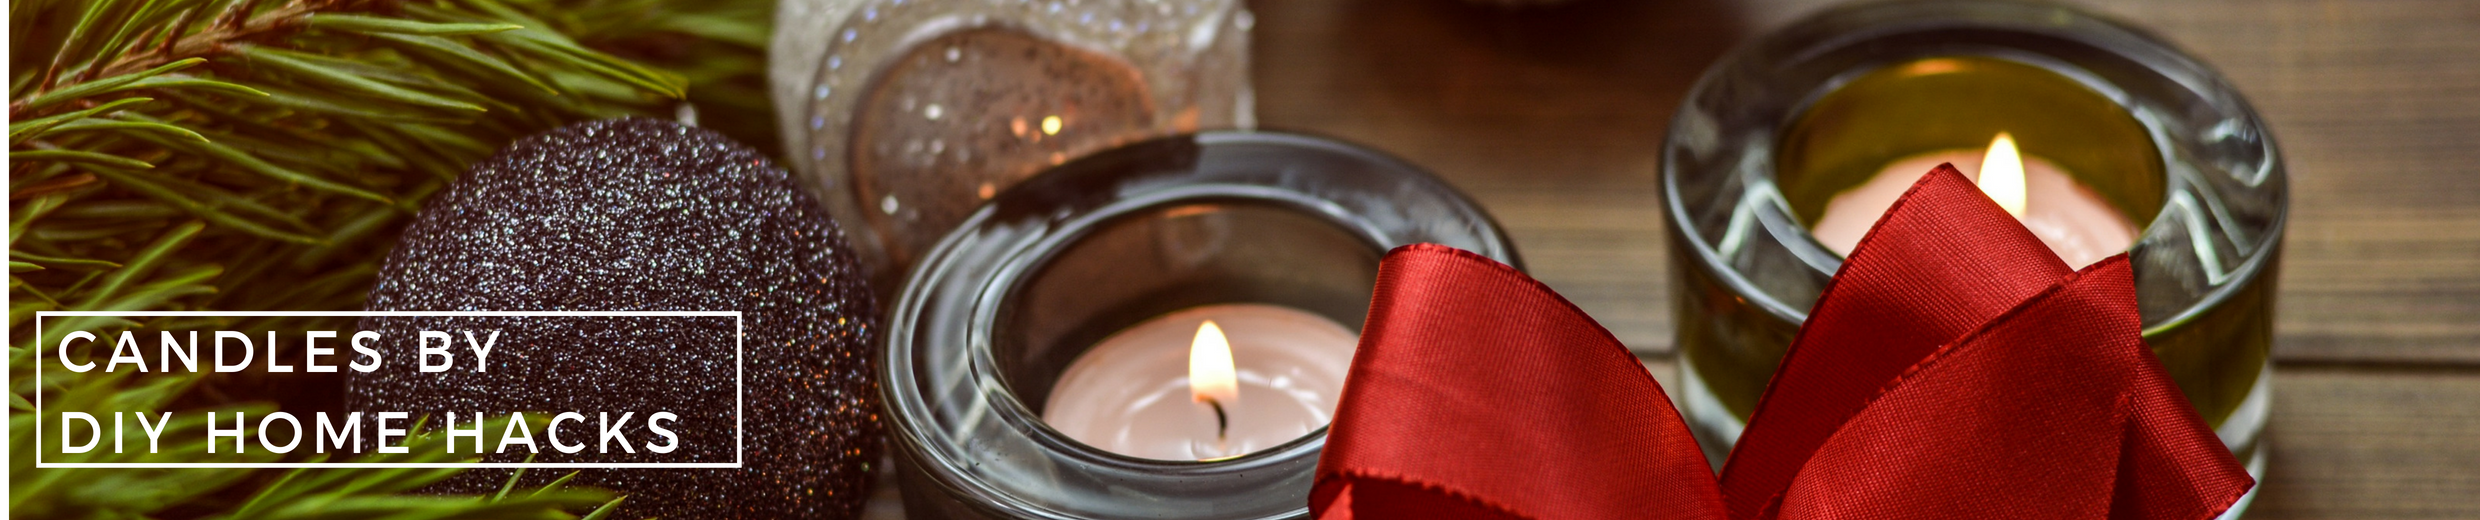 warm candles for your home